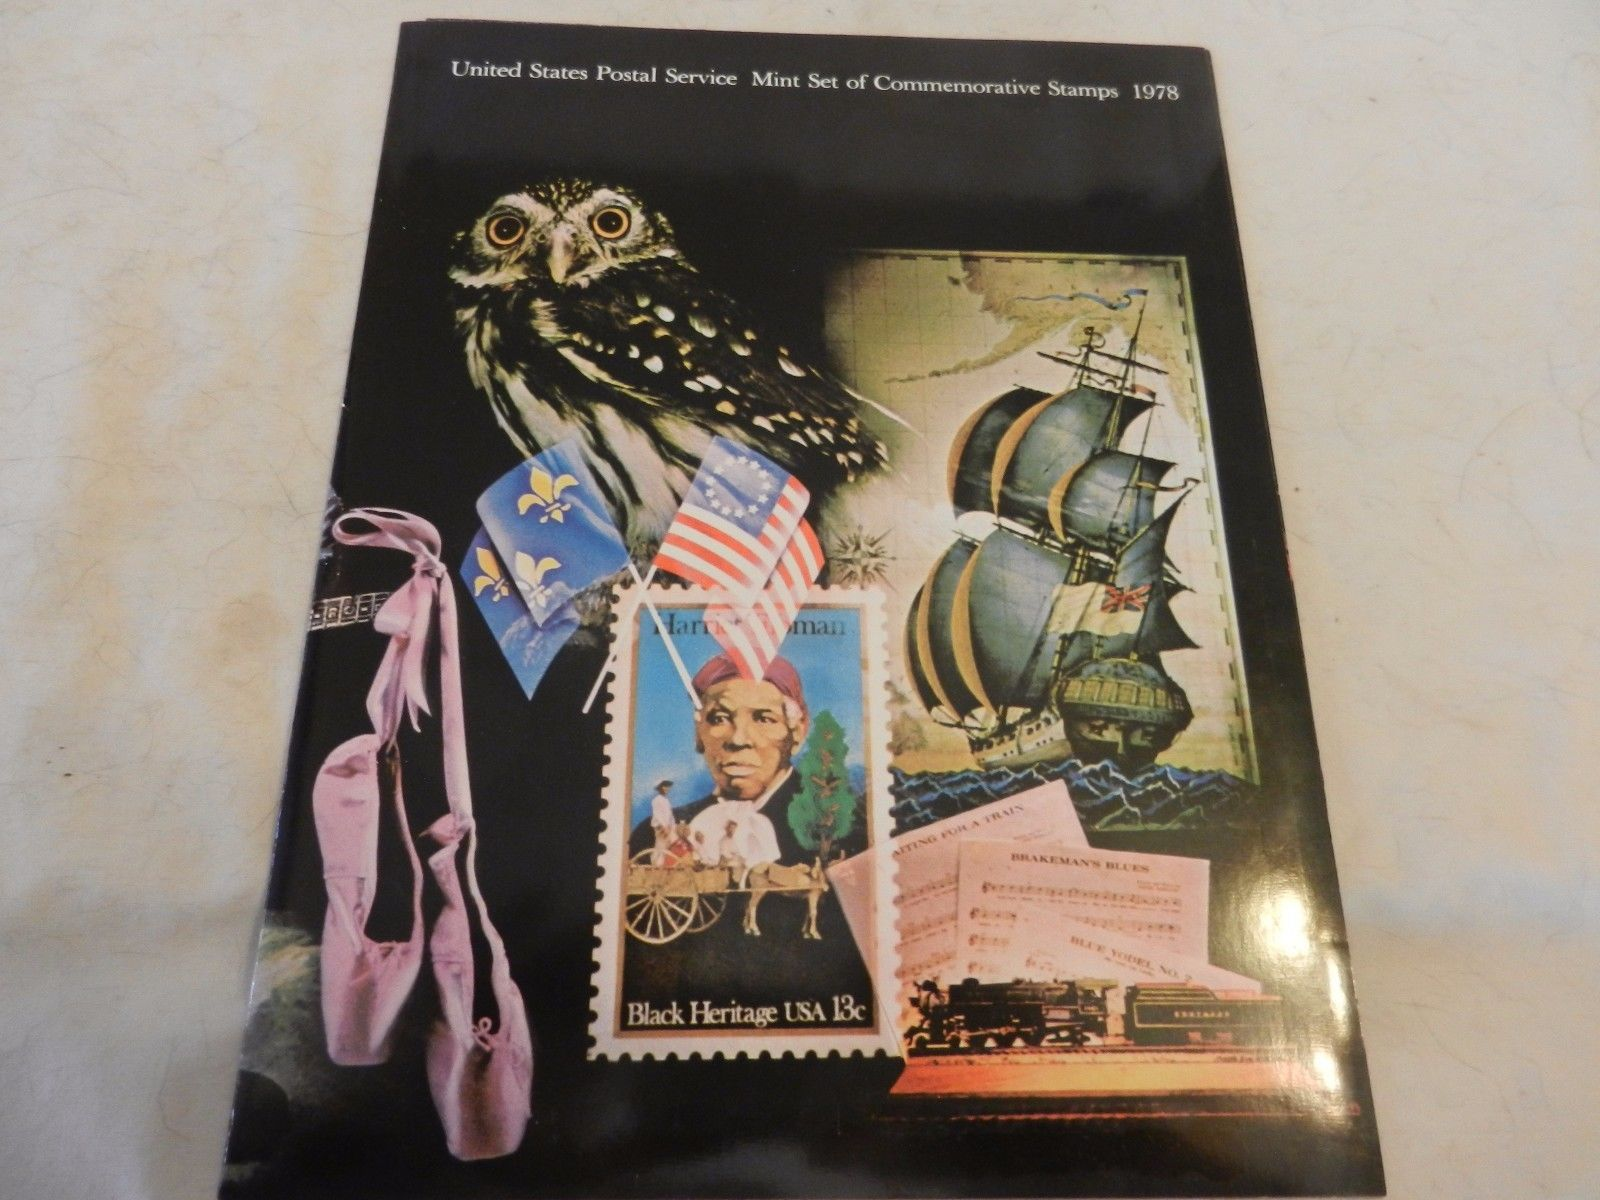 1978 USPS Mint Set of Commemorative Stamps Book Only no stamps